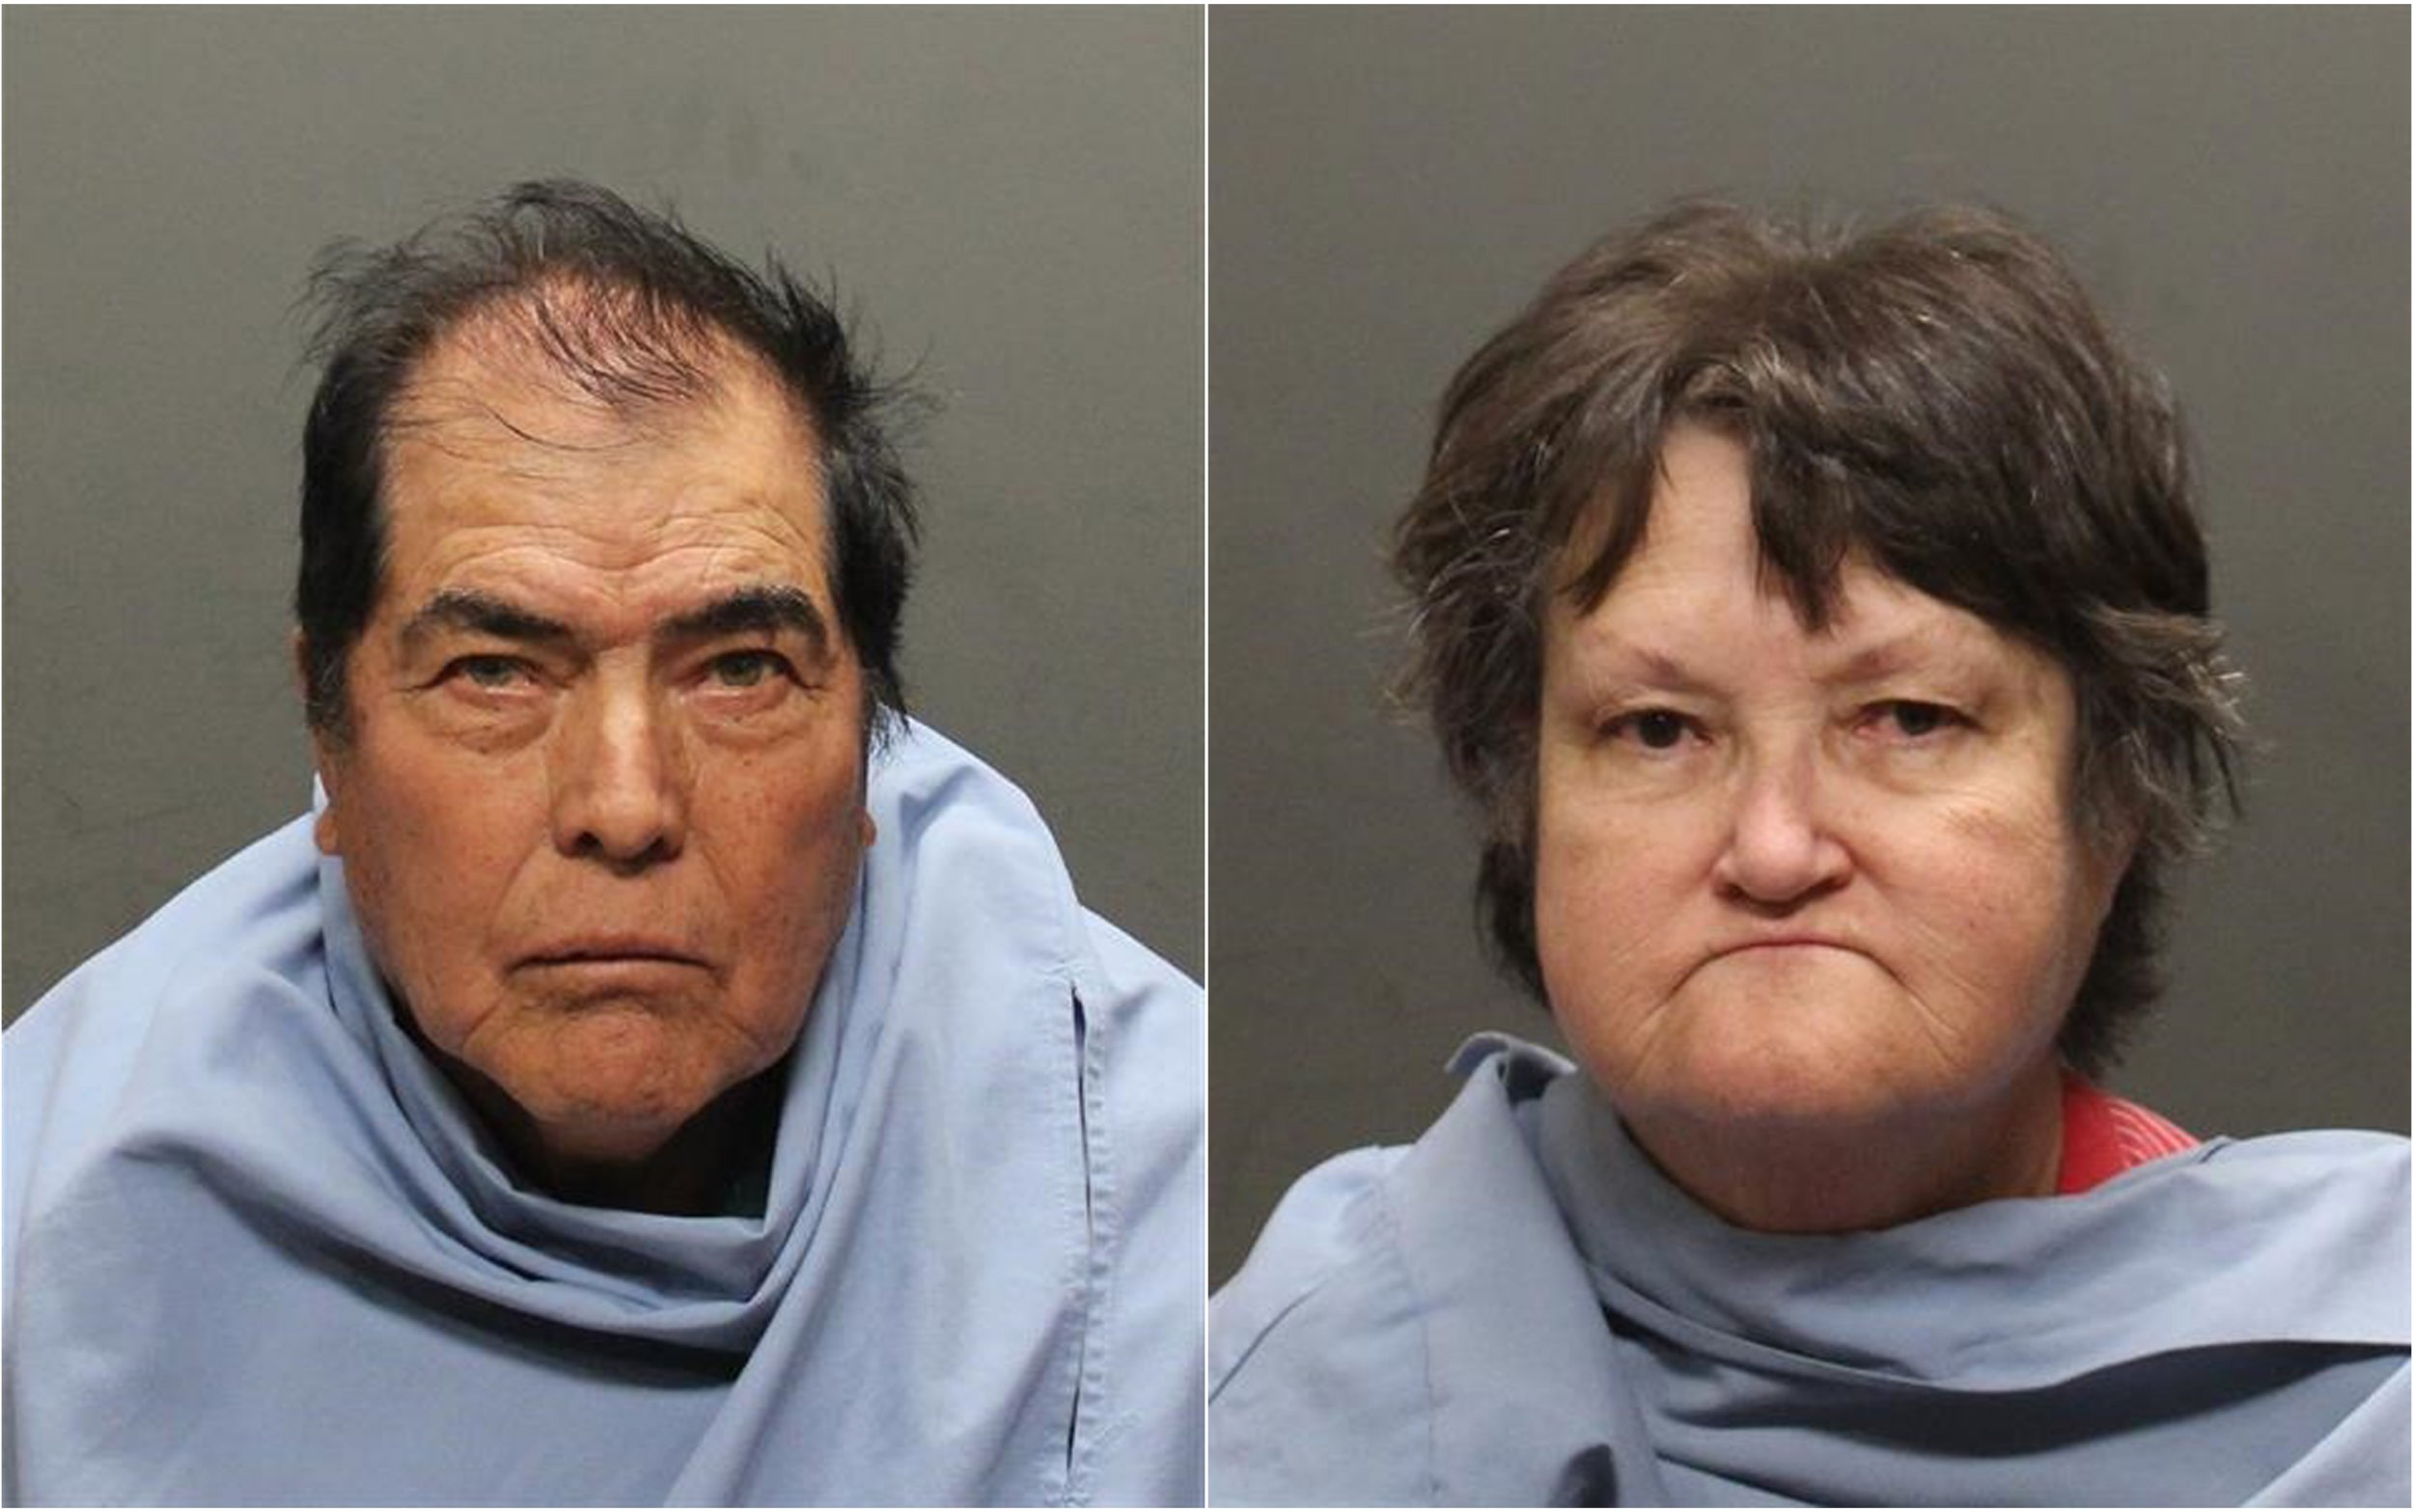 Arizona Couple Arrested for Alleged Child Abuse After Their Four